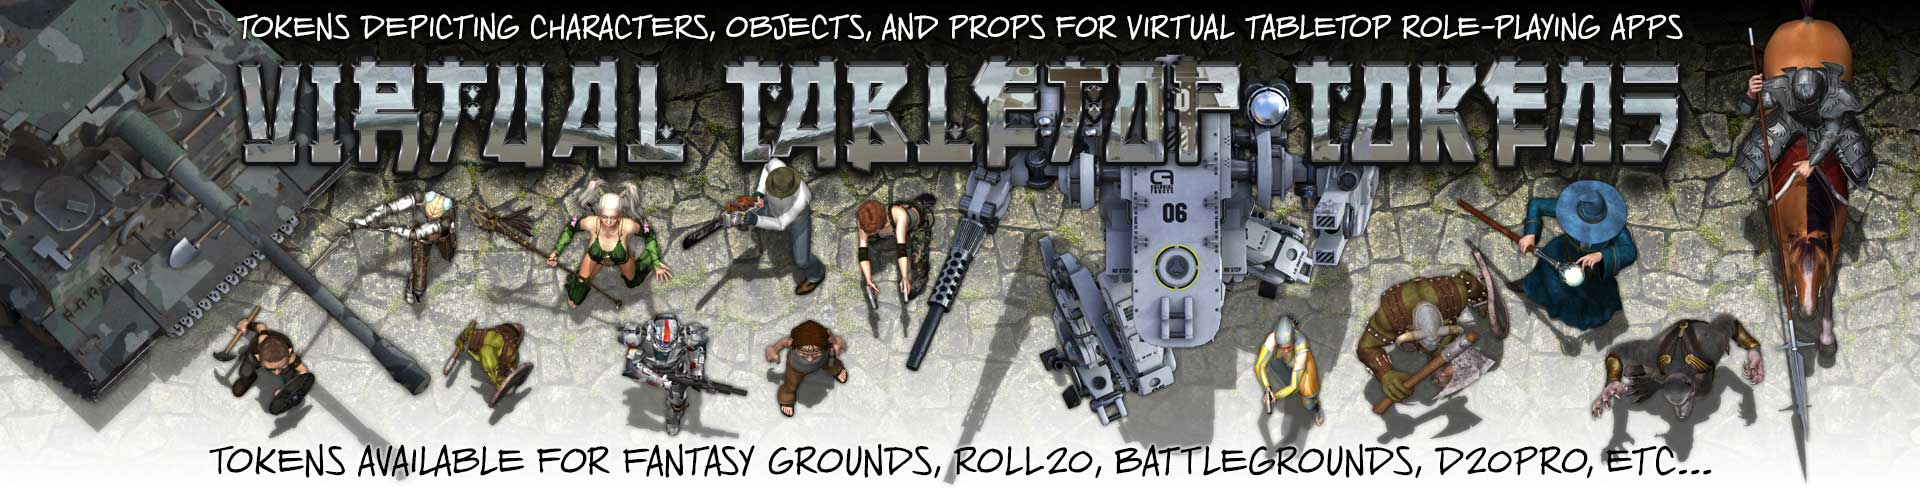 Virtual Tabletop Tokens